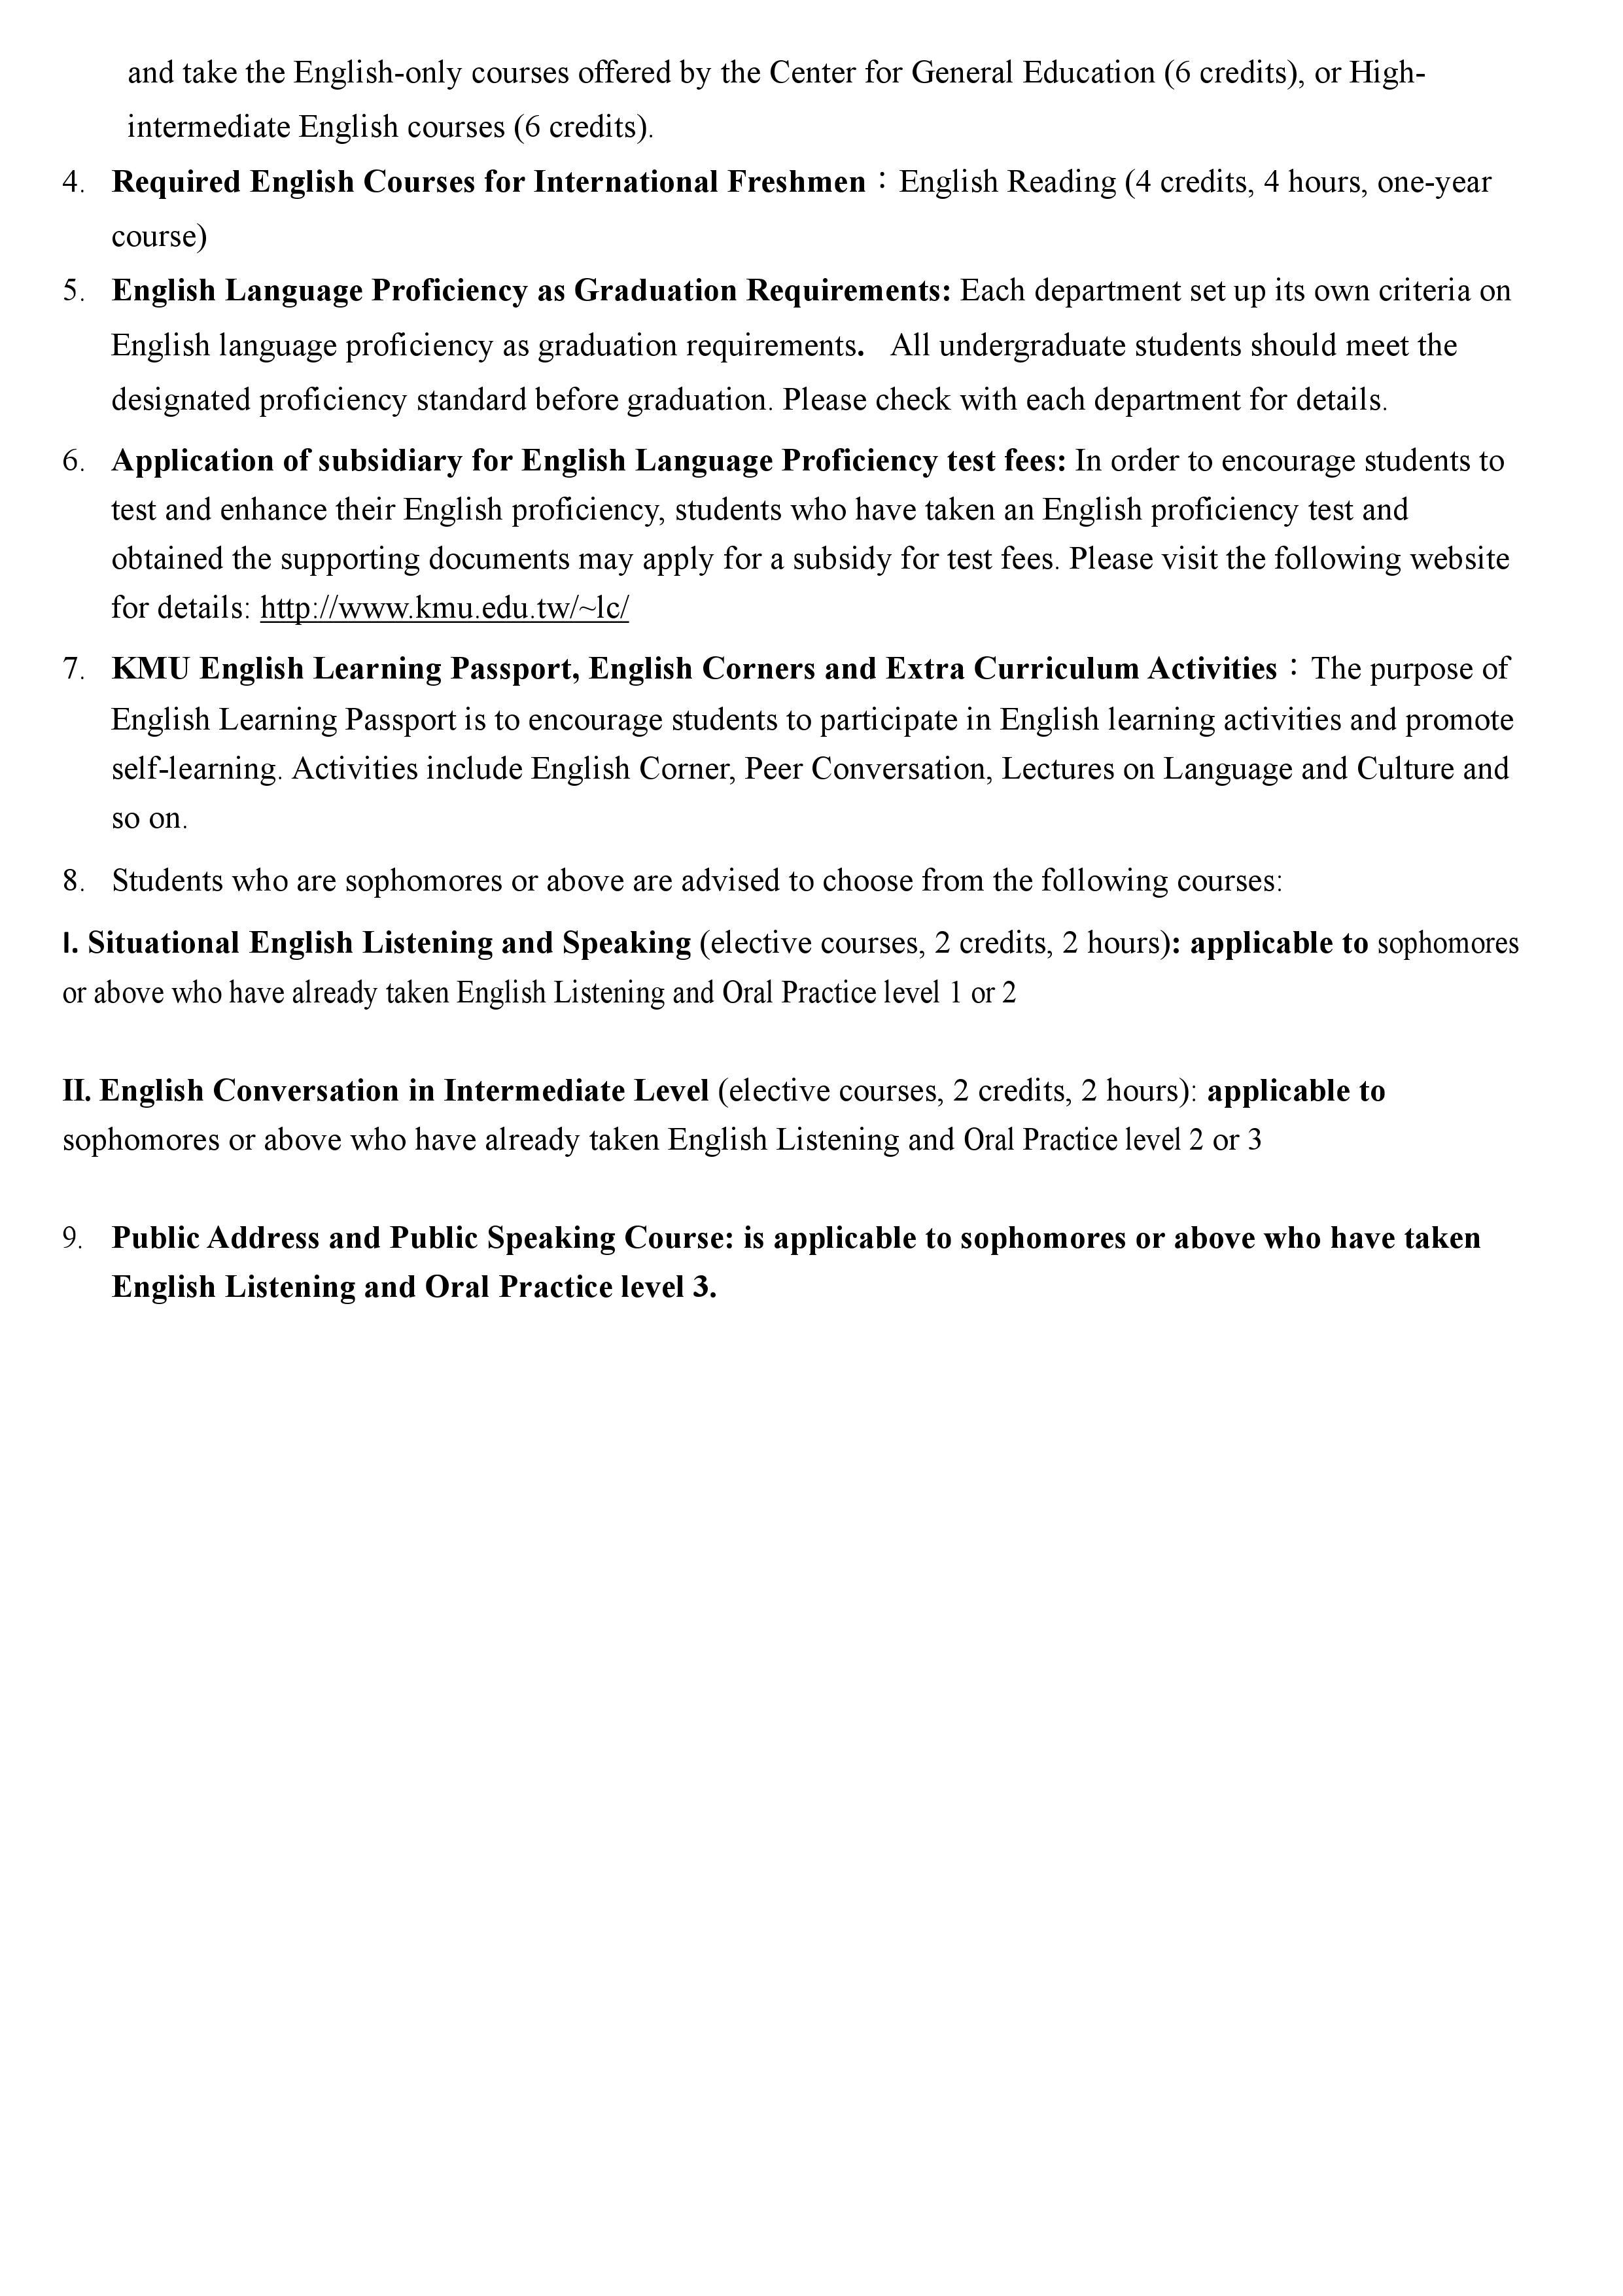 KMU English Proficiency Requirements and English Programs for Freshmen 108 04